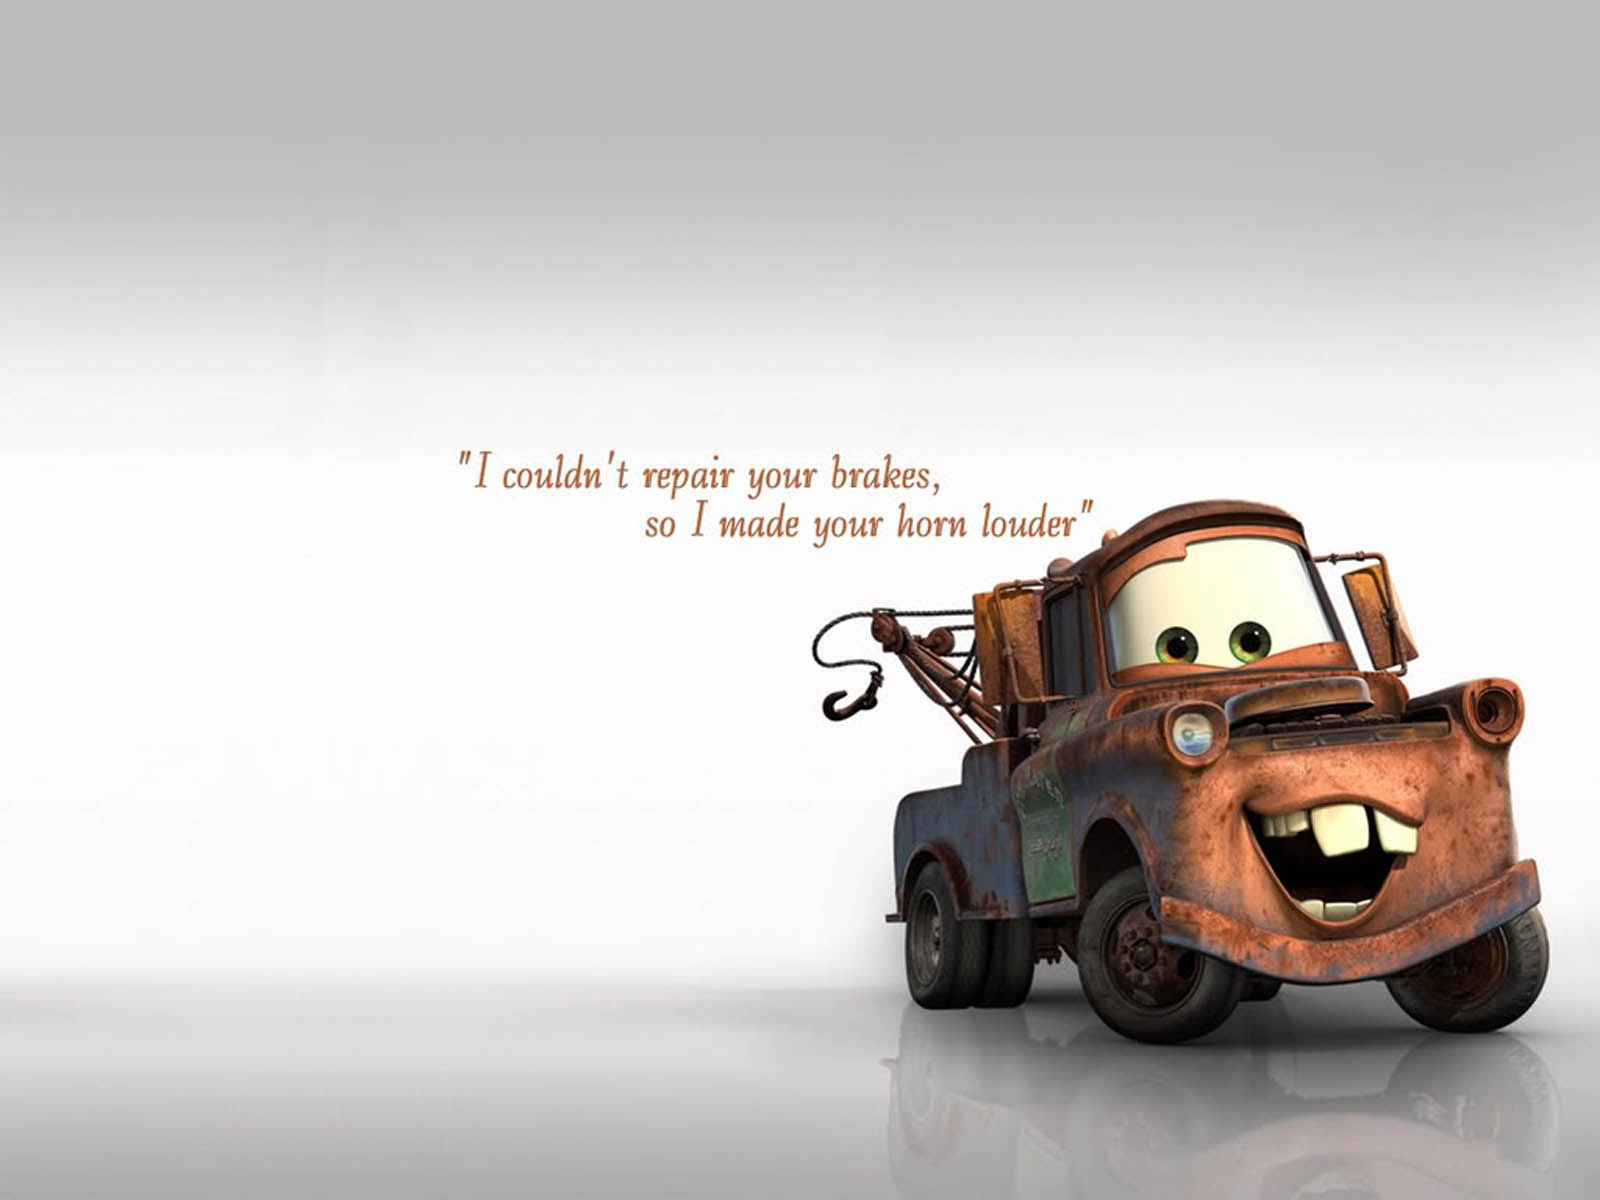 Cute Love Quote   Wallpaper High Definition High Quality Widescreen 1600x1200